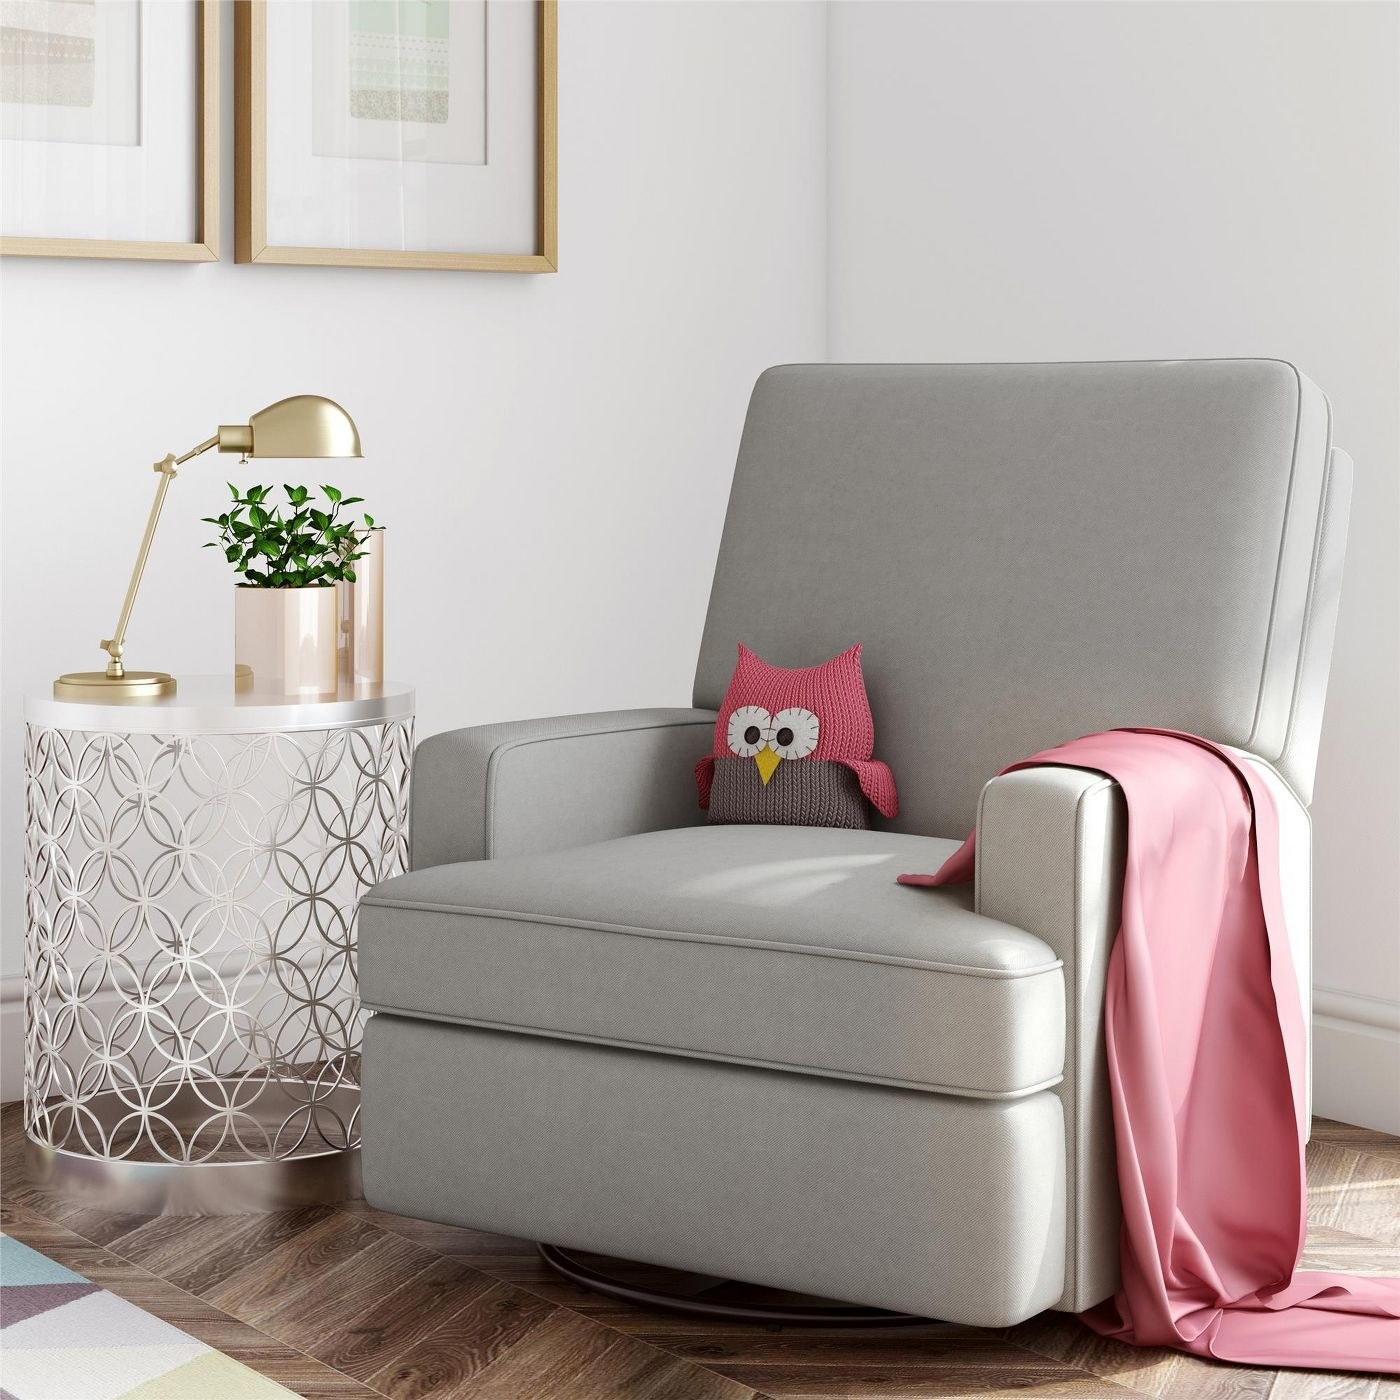 The gray recliner